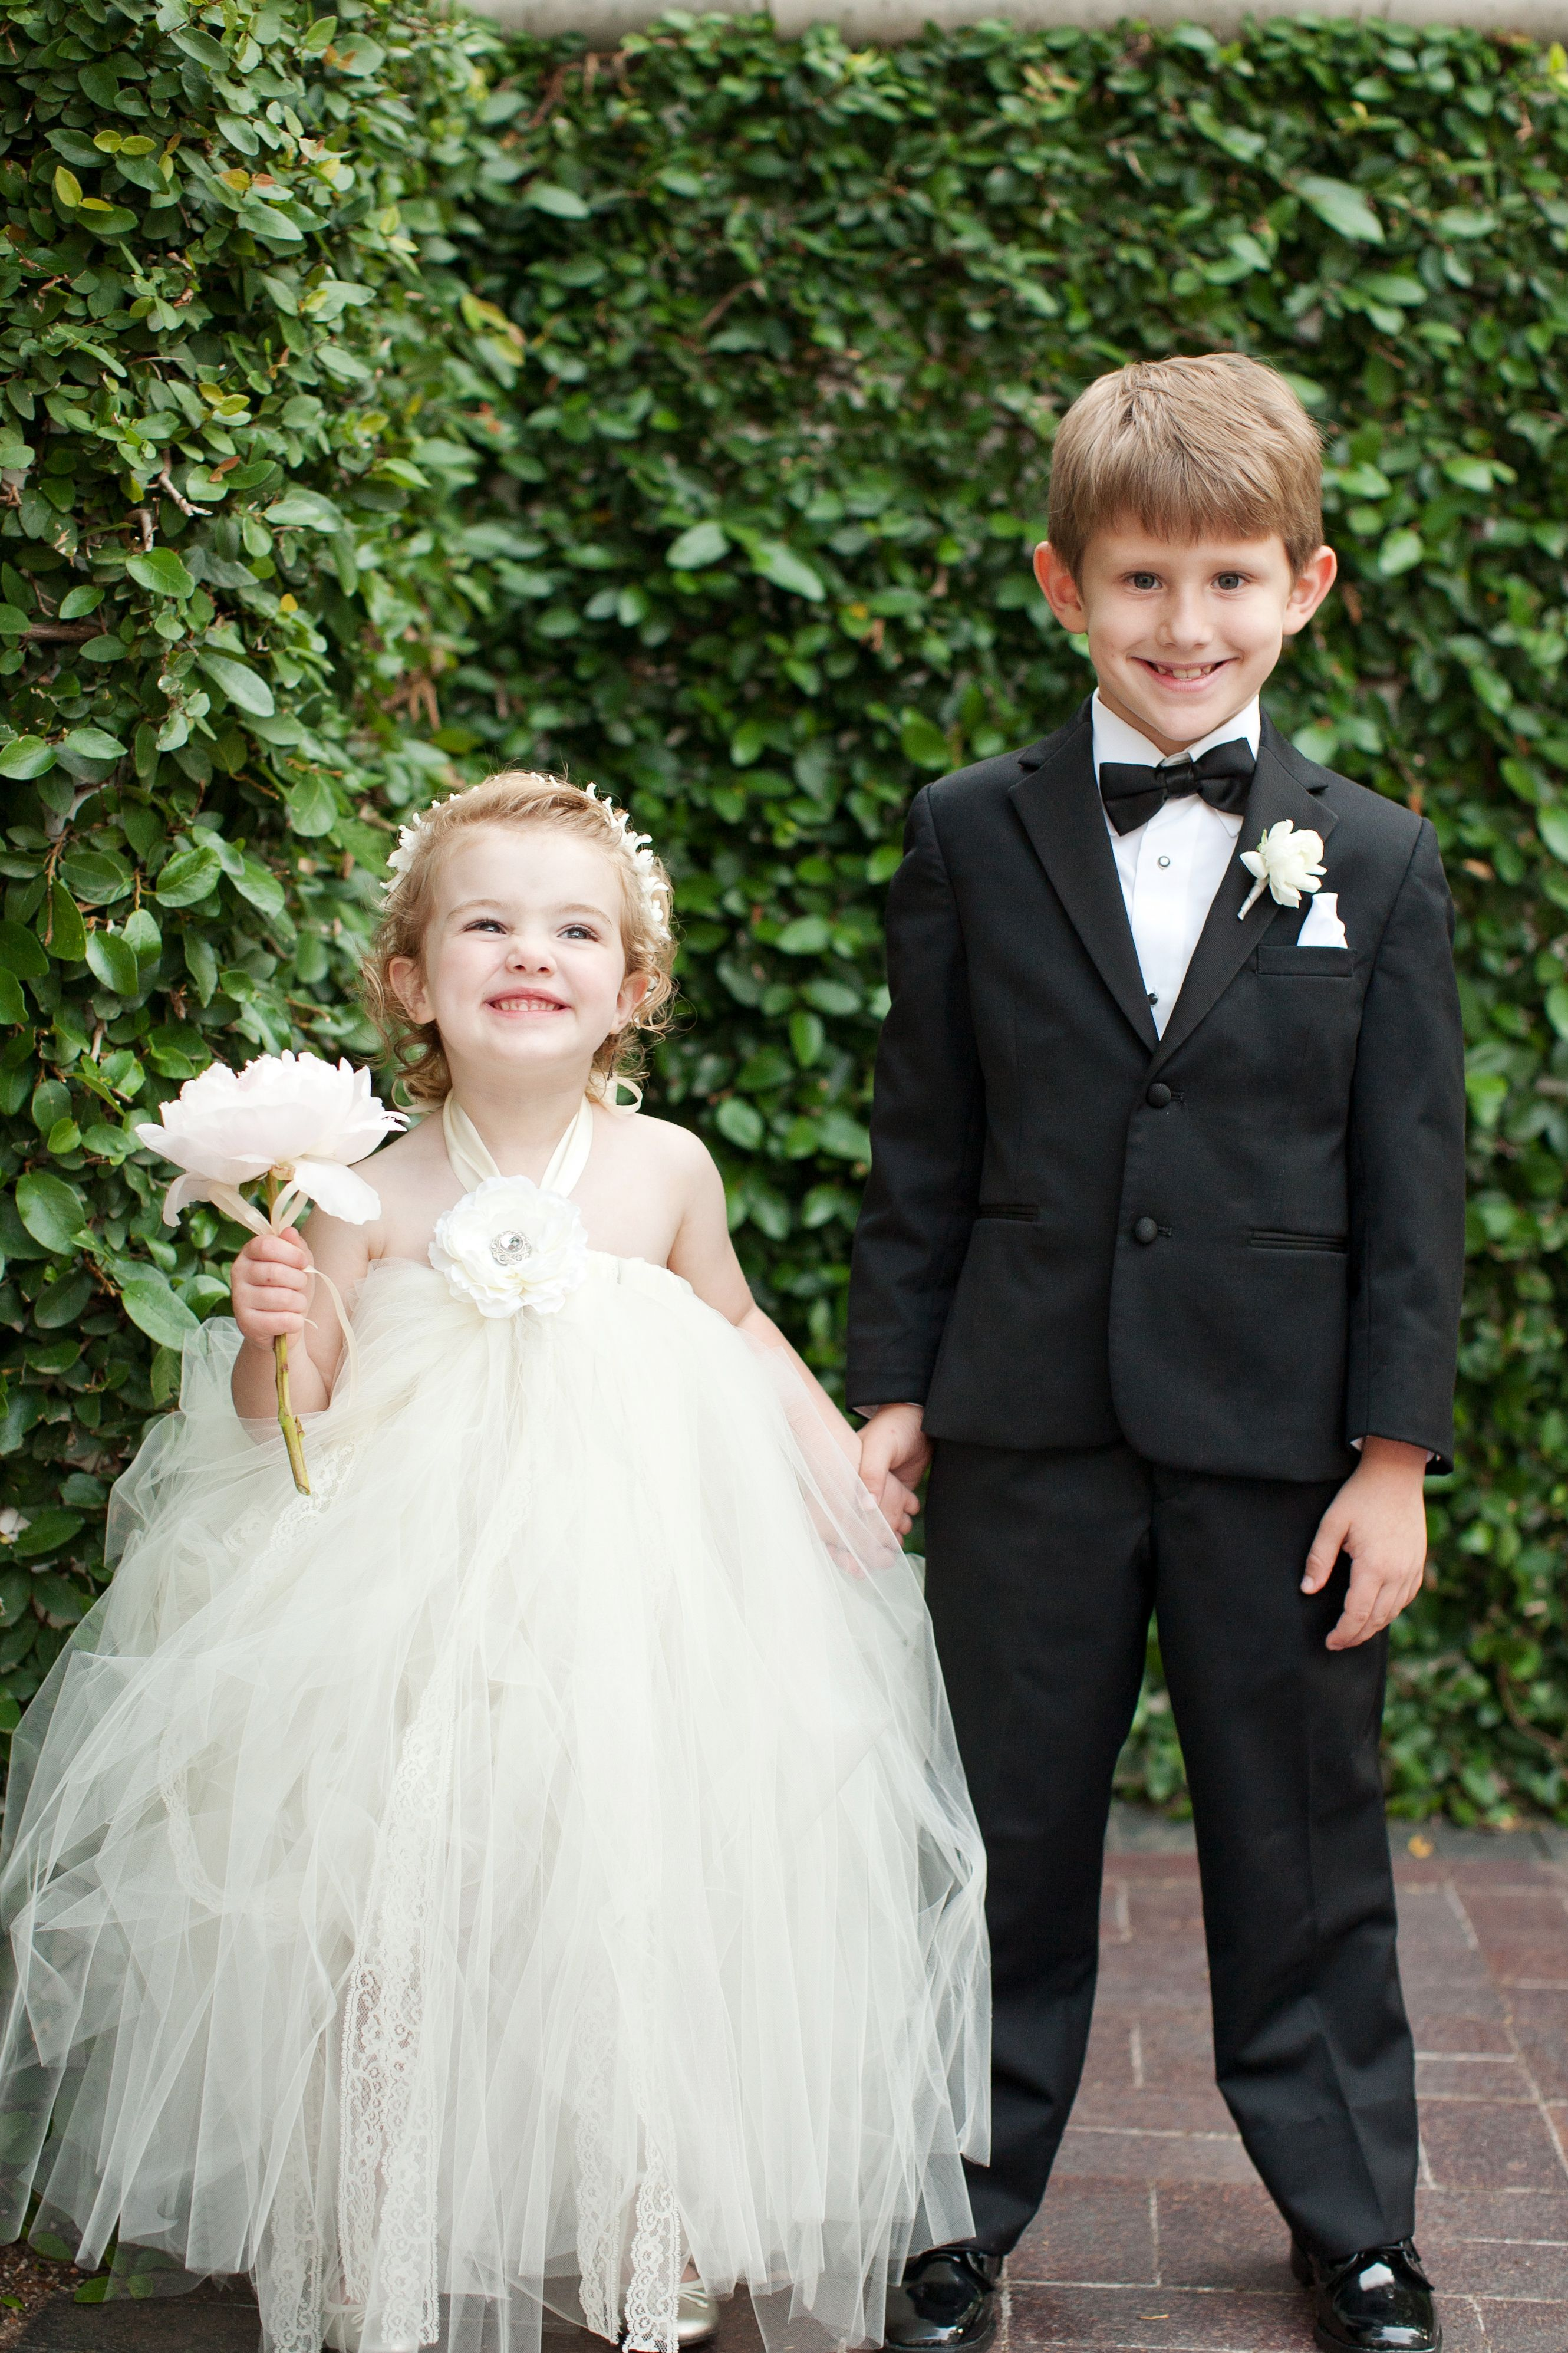 Precious Char and Grant as flower girl and ring bearer.